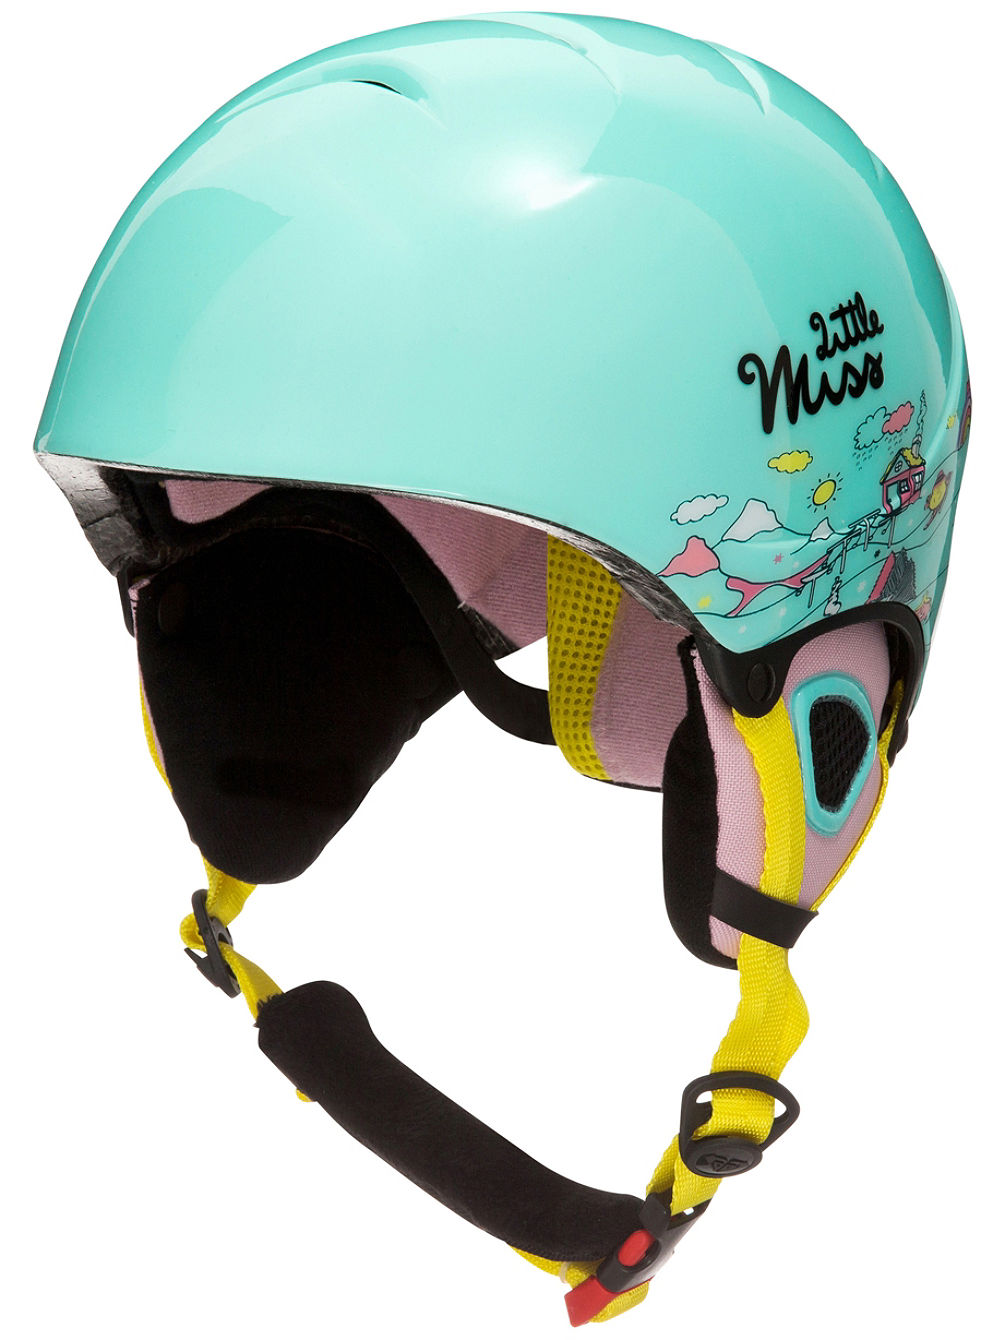 Misty Little Miss Helmet Youth